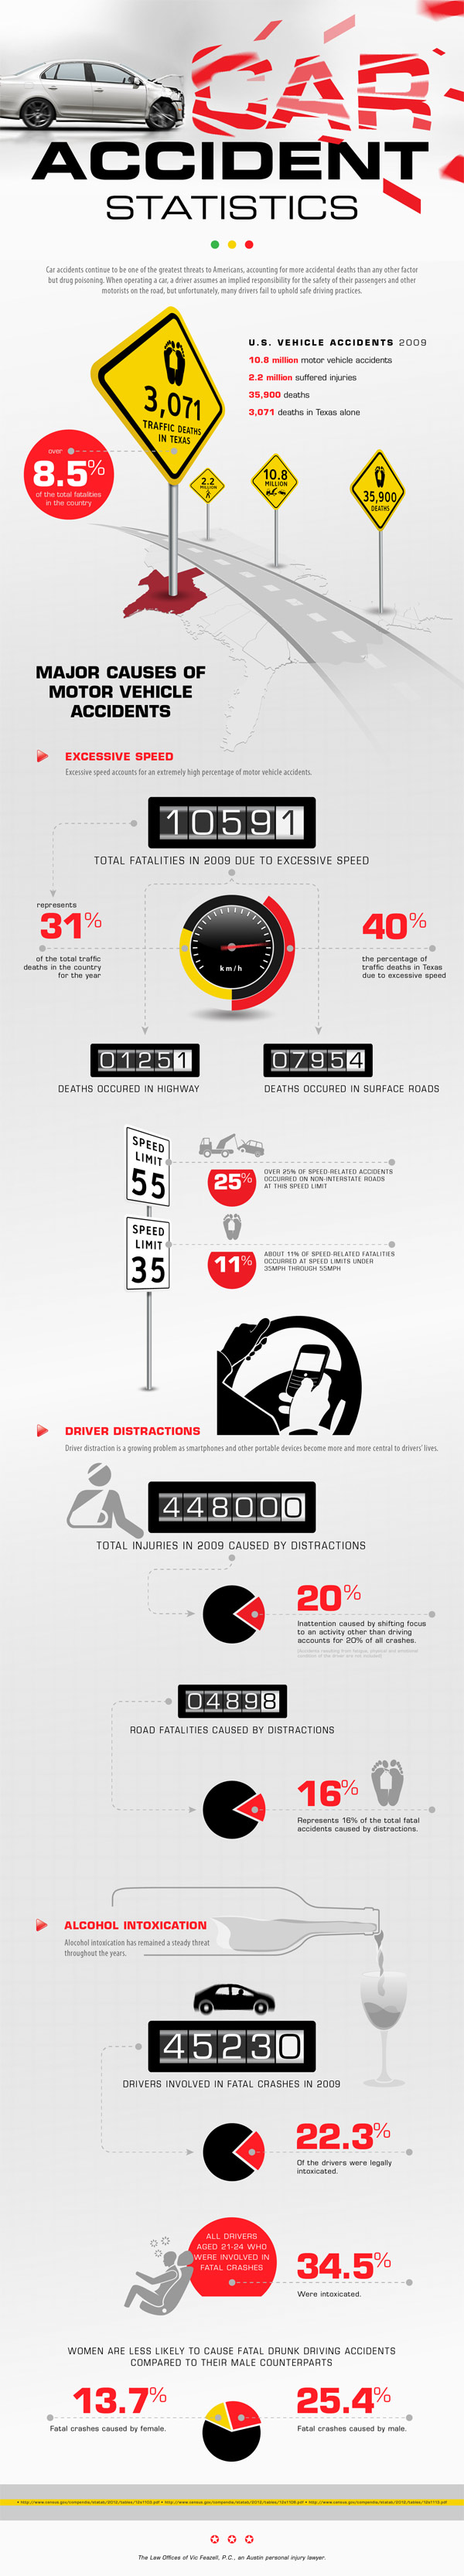 car-accident-statistics-infographic_50b5062a17a15